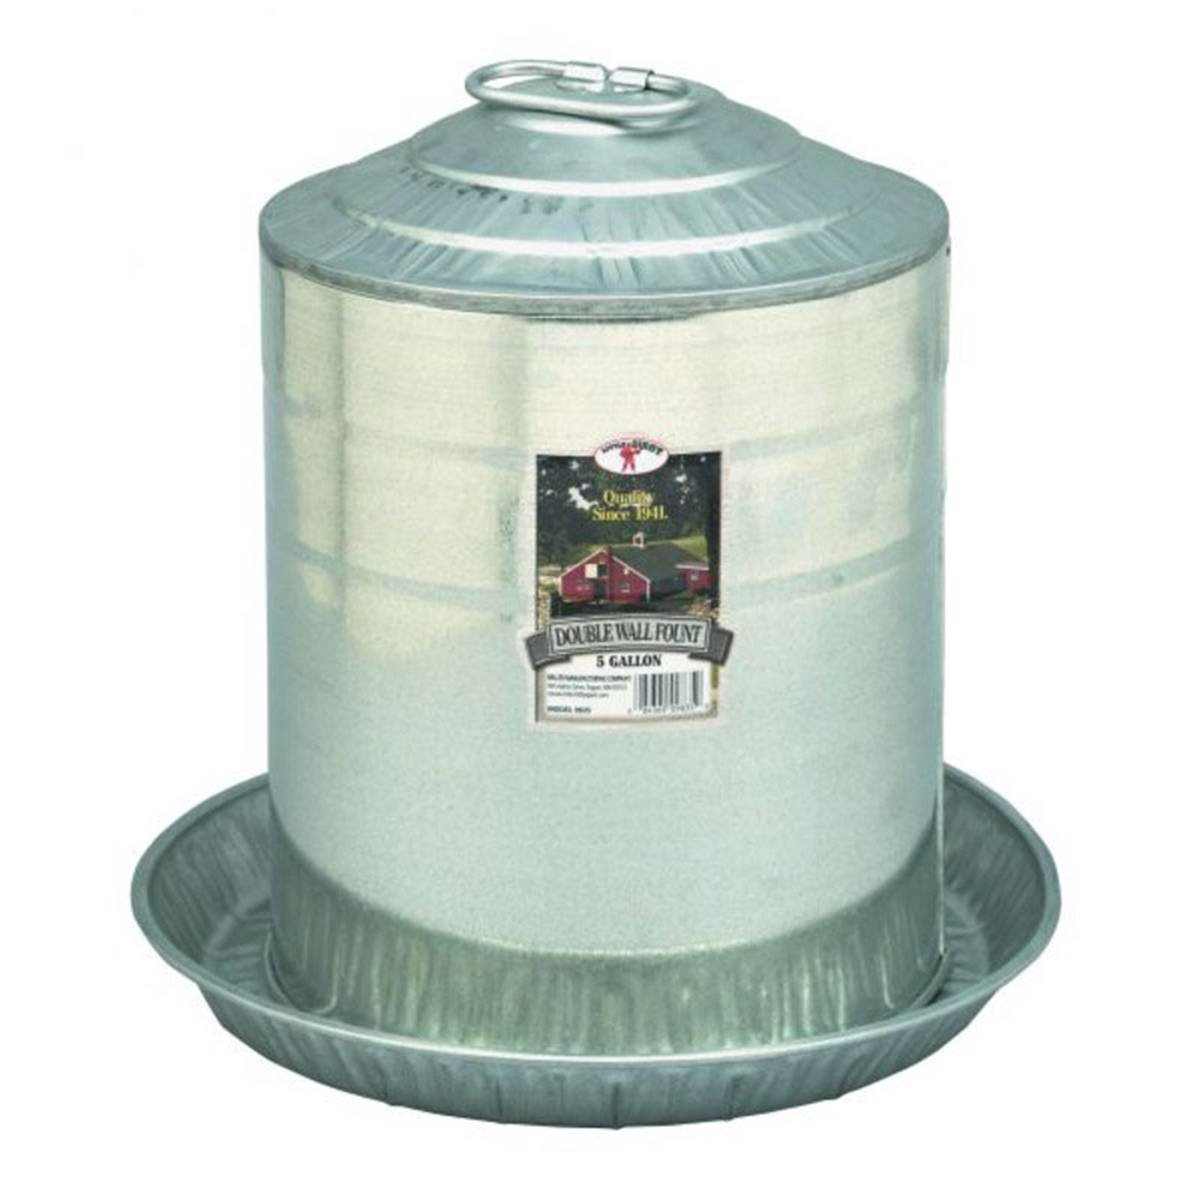 DPD Little Giant 5 Gallon Double Wall Metal Poultry Fountain